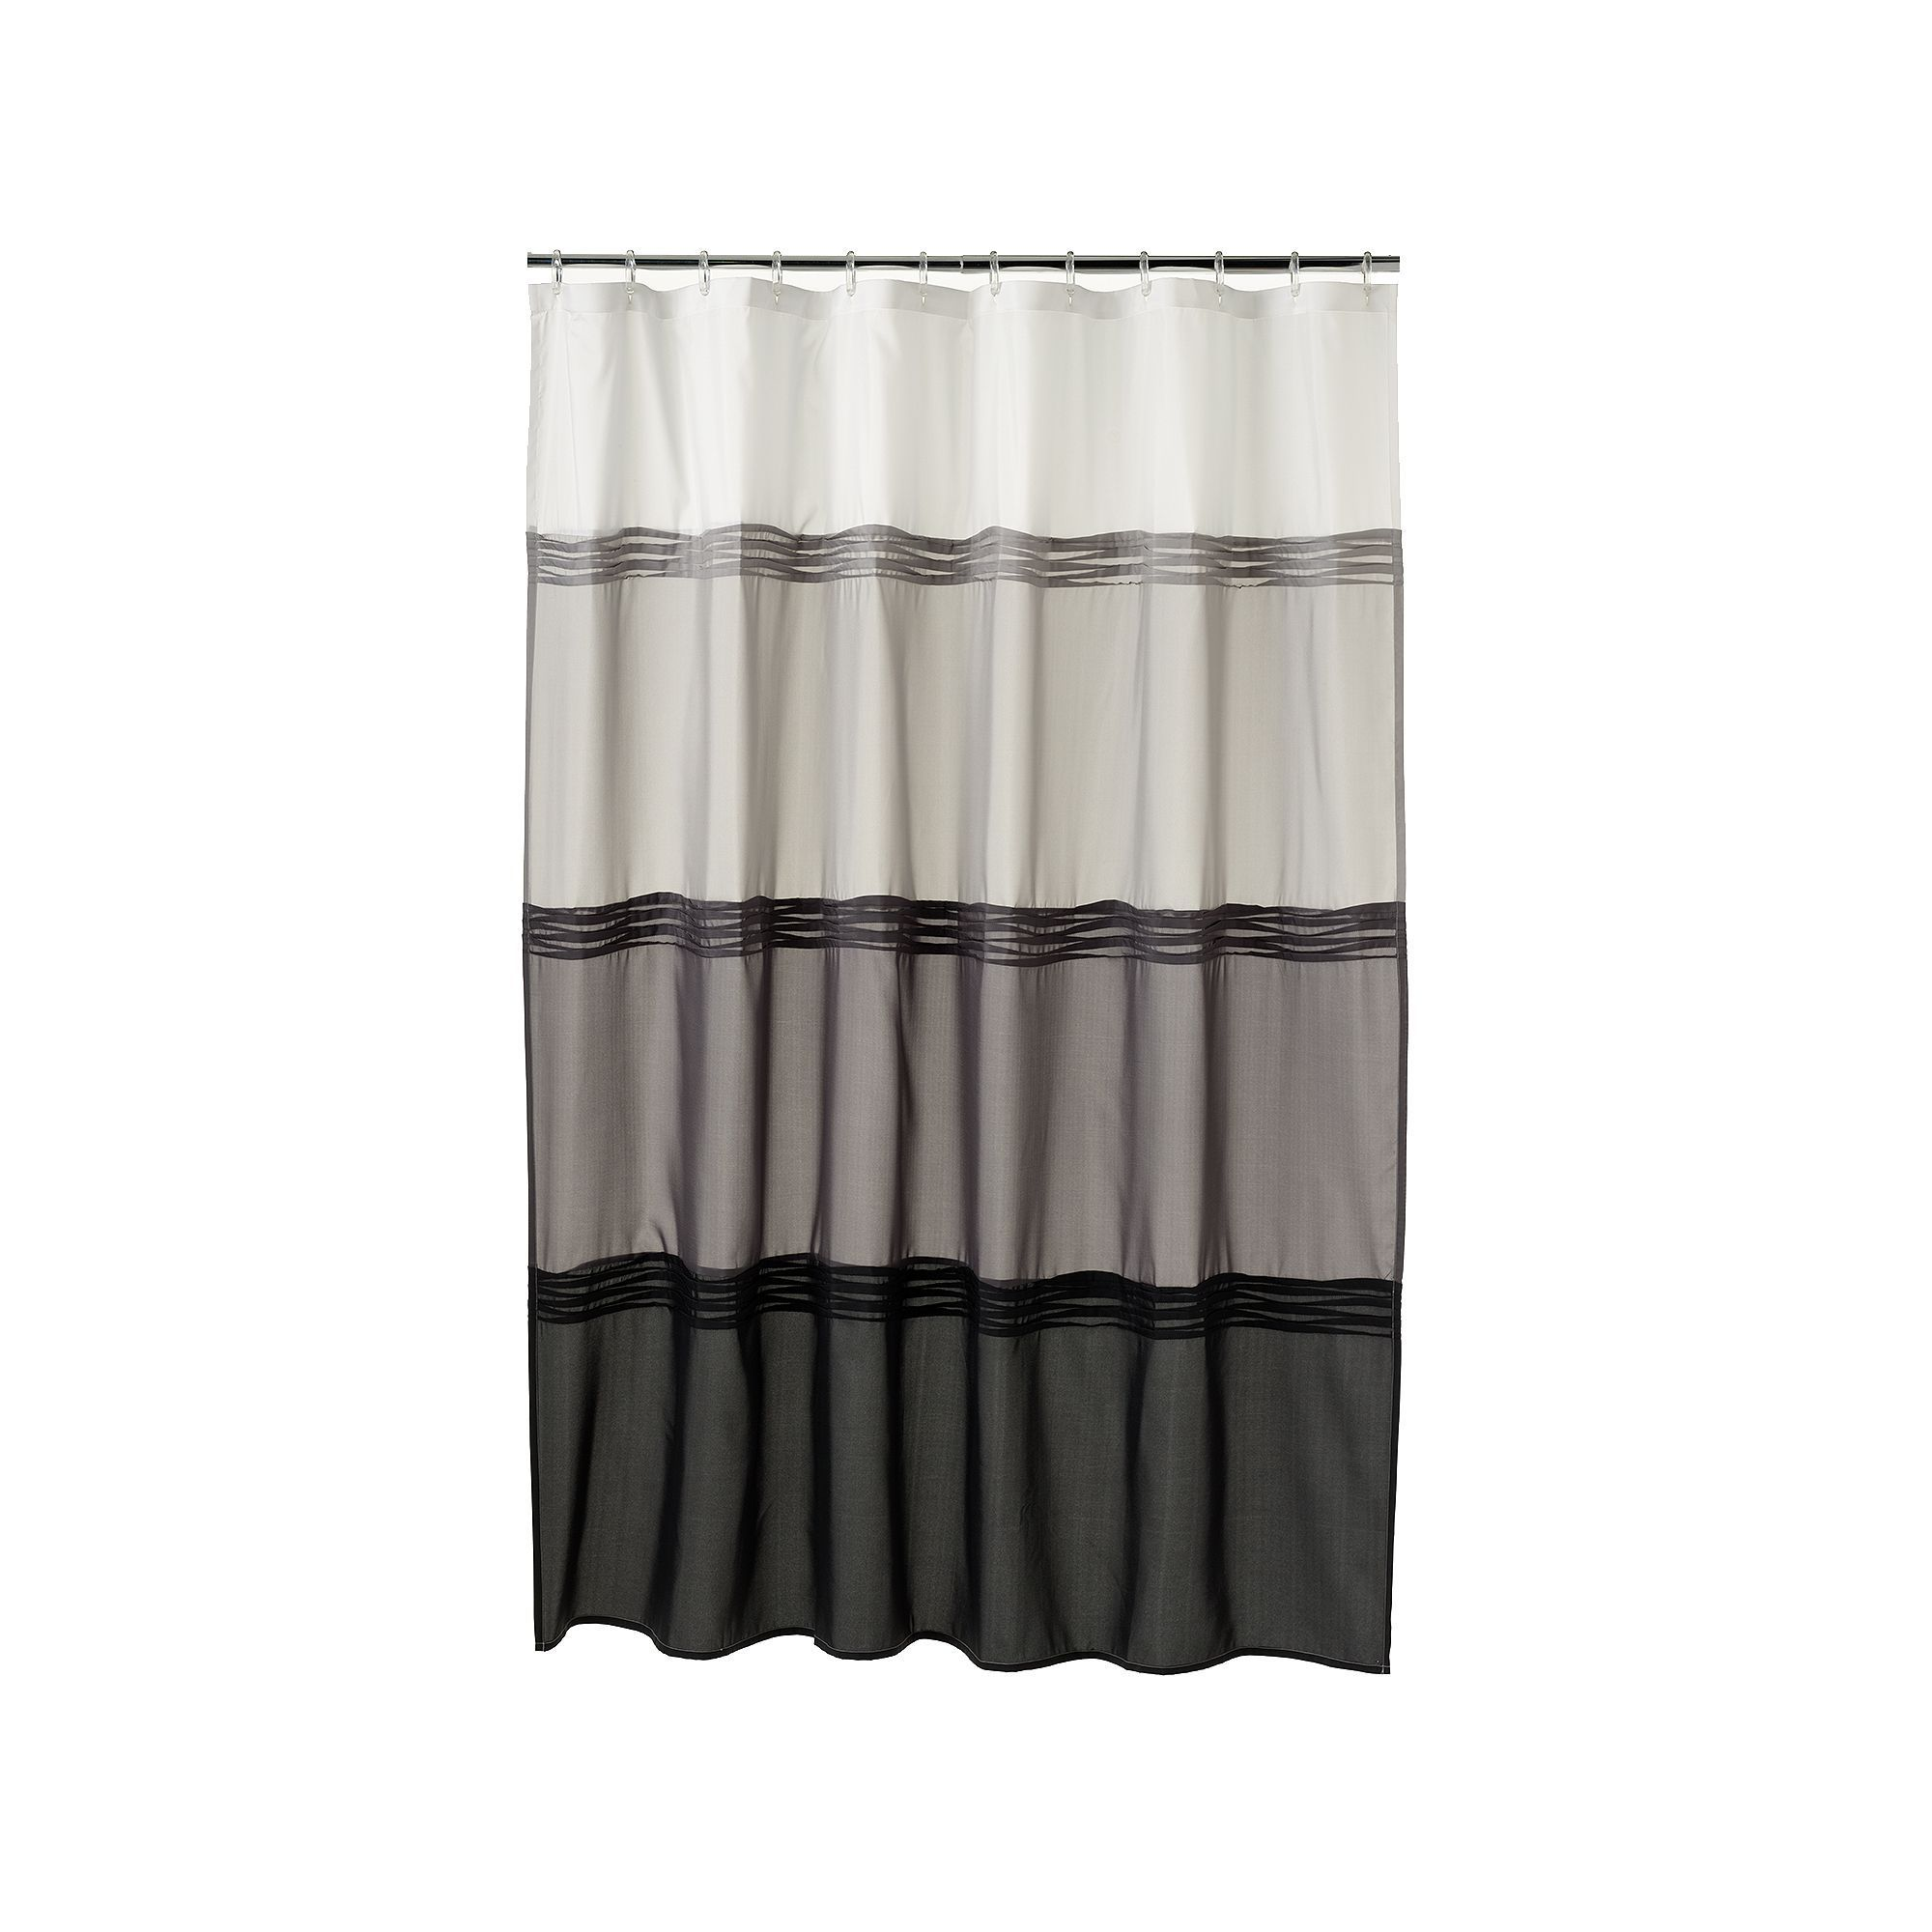 Home ClassicsAR Black Pintuck Fabric Shower Curtain